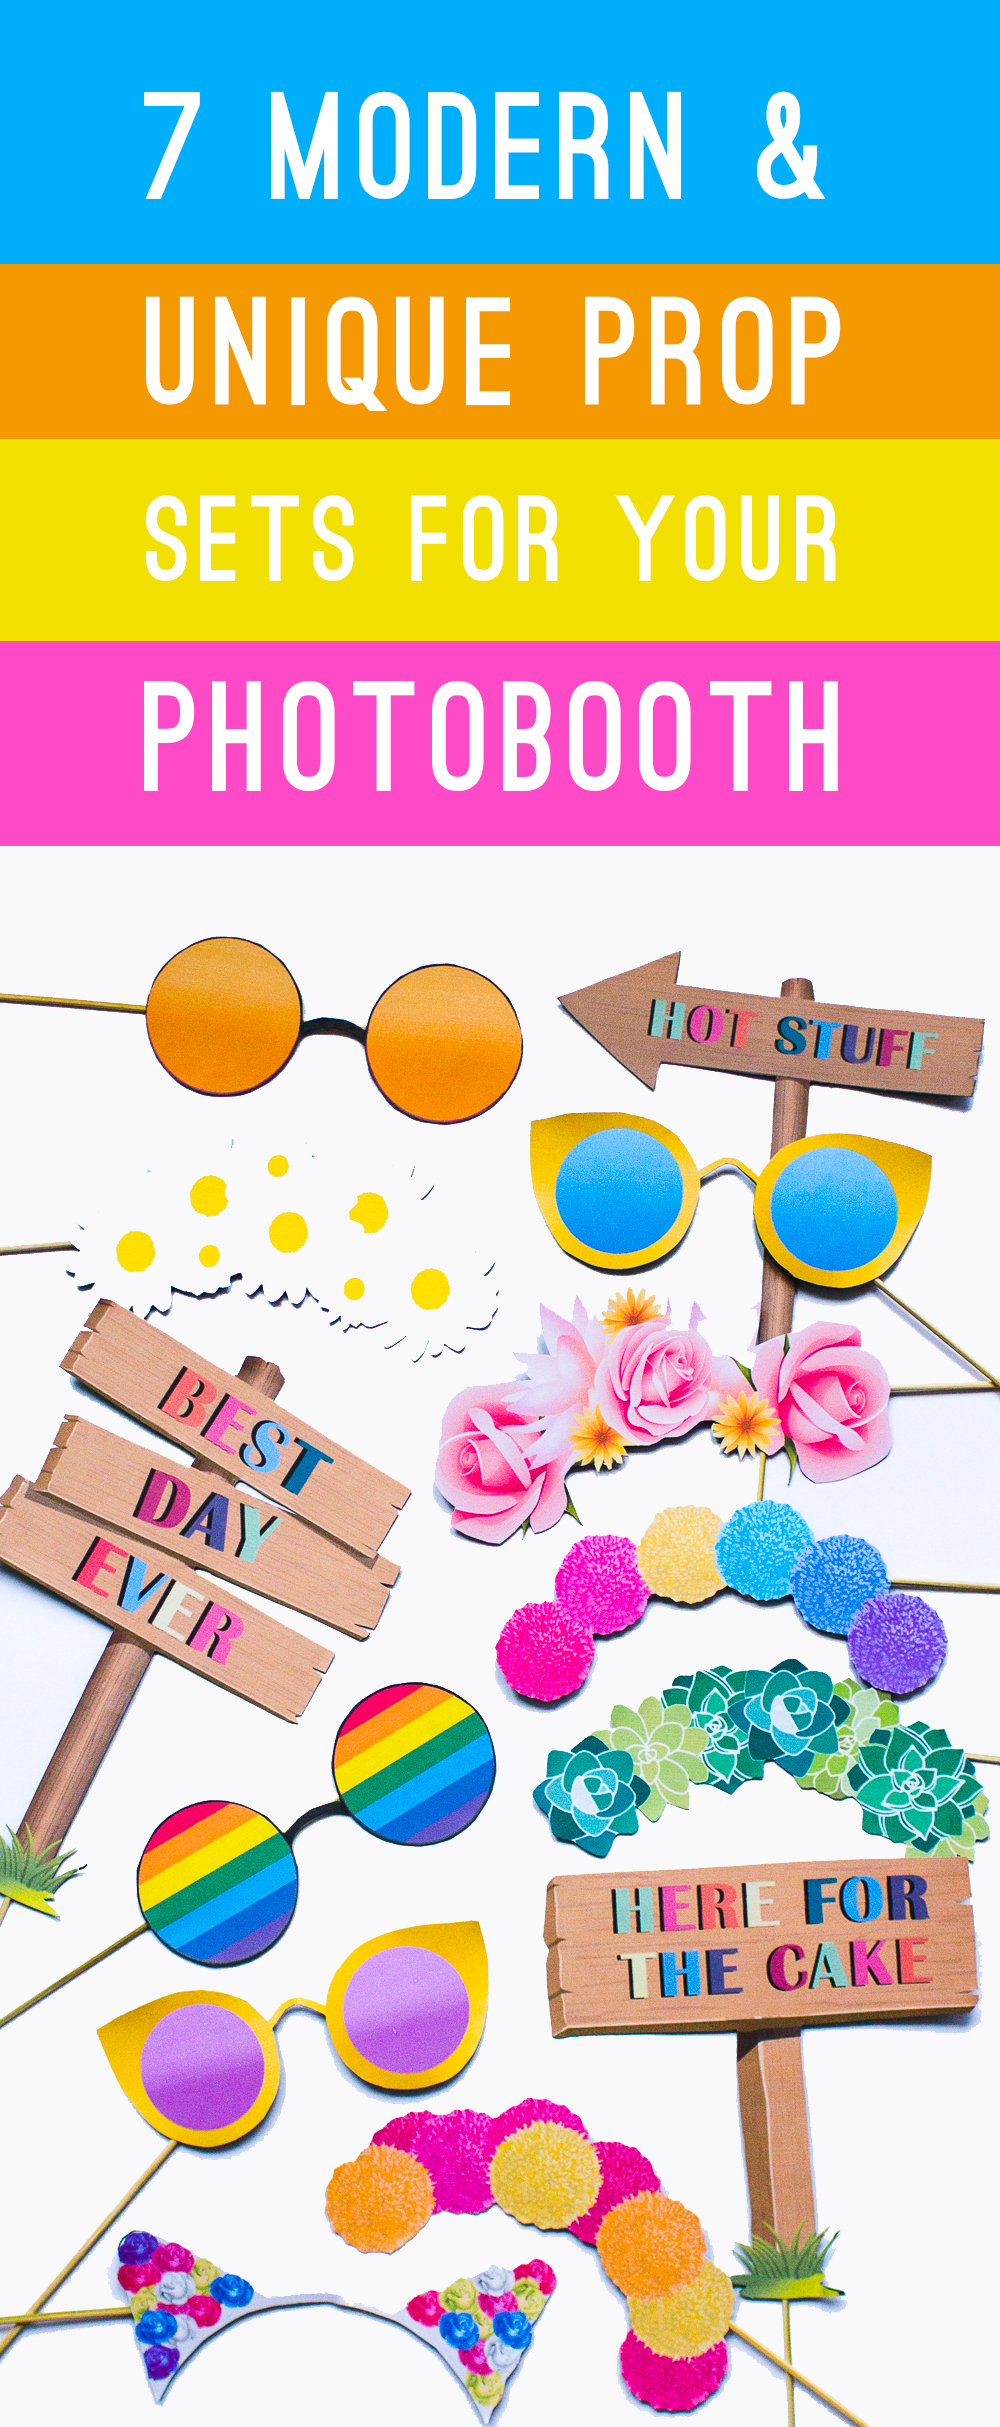 7 MODERN & UNIQUE PROP SETS TO MAKE YOUR PHOTO BOOTH THE COOLEST